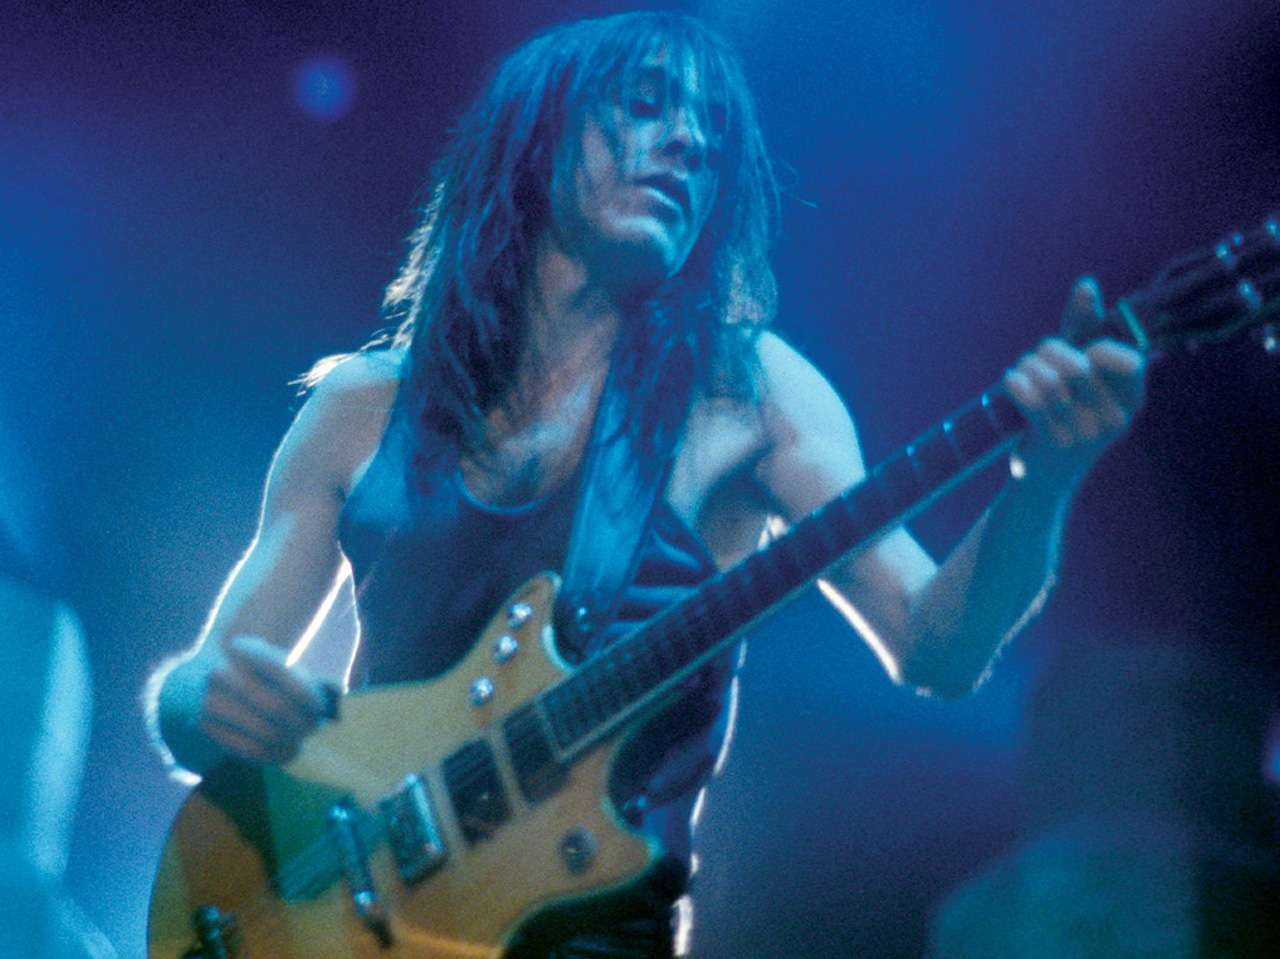 Malcolm Young Foto: acdc.com